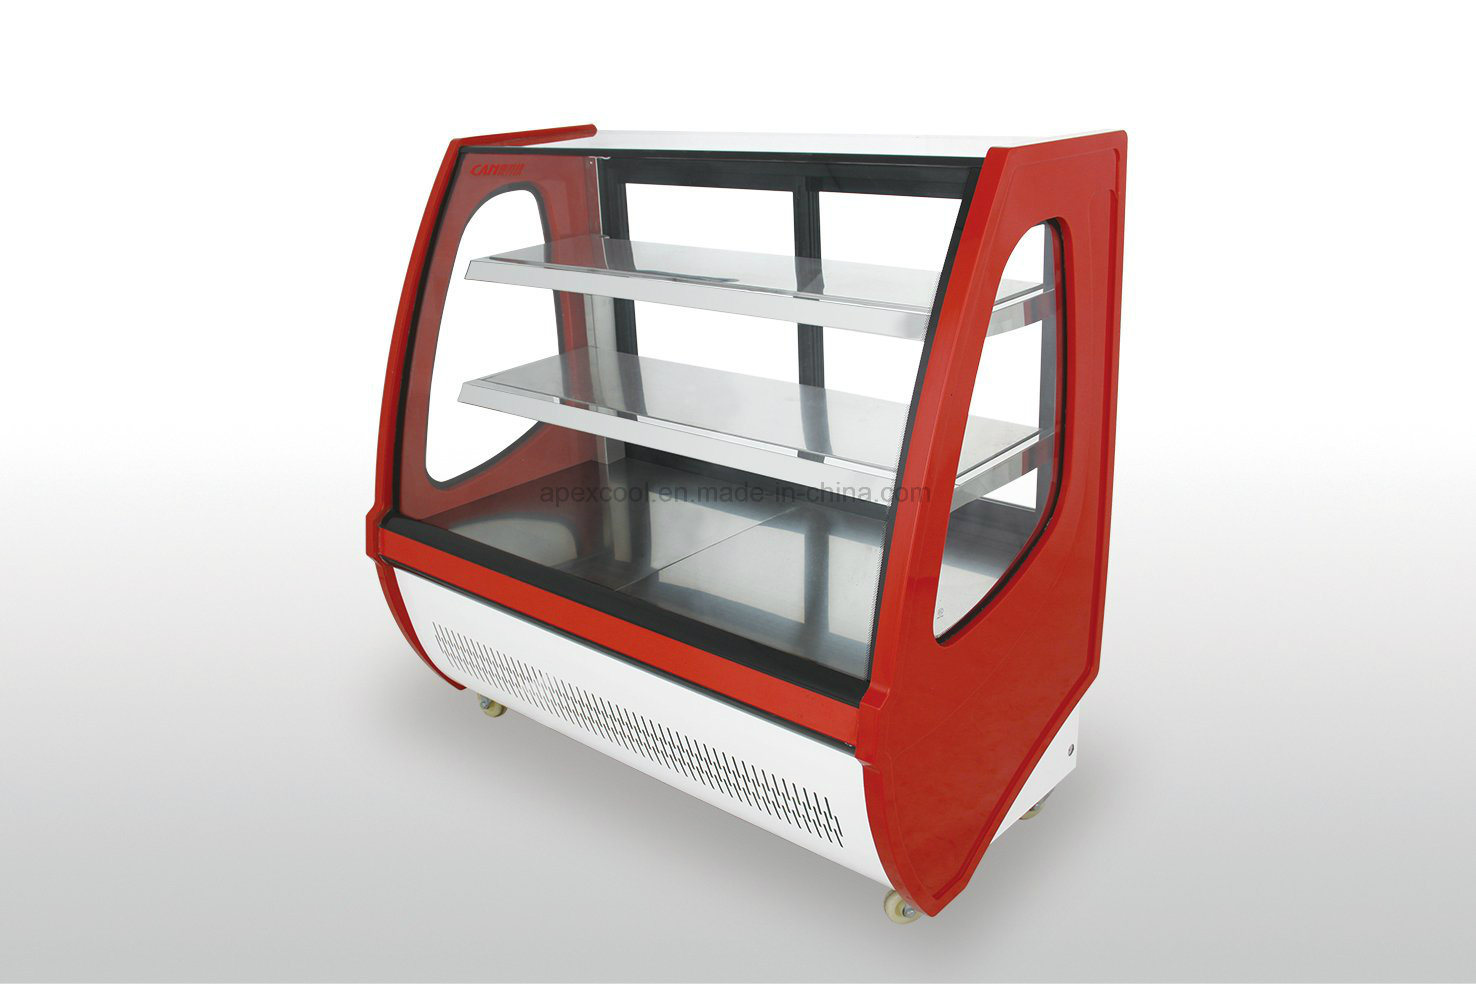 Two Shelf Bakery Display Pastry Cooler Showcase with Embraco Compressor